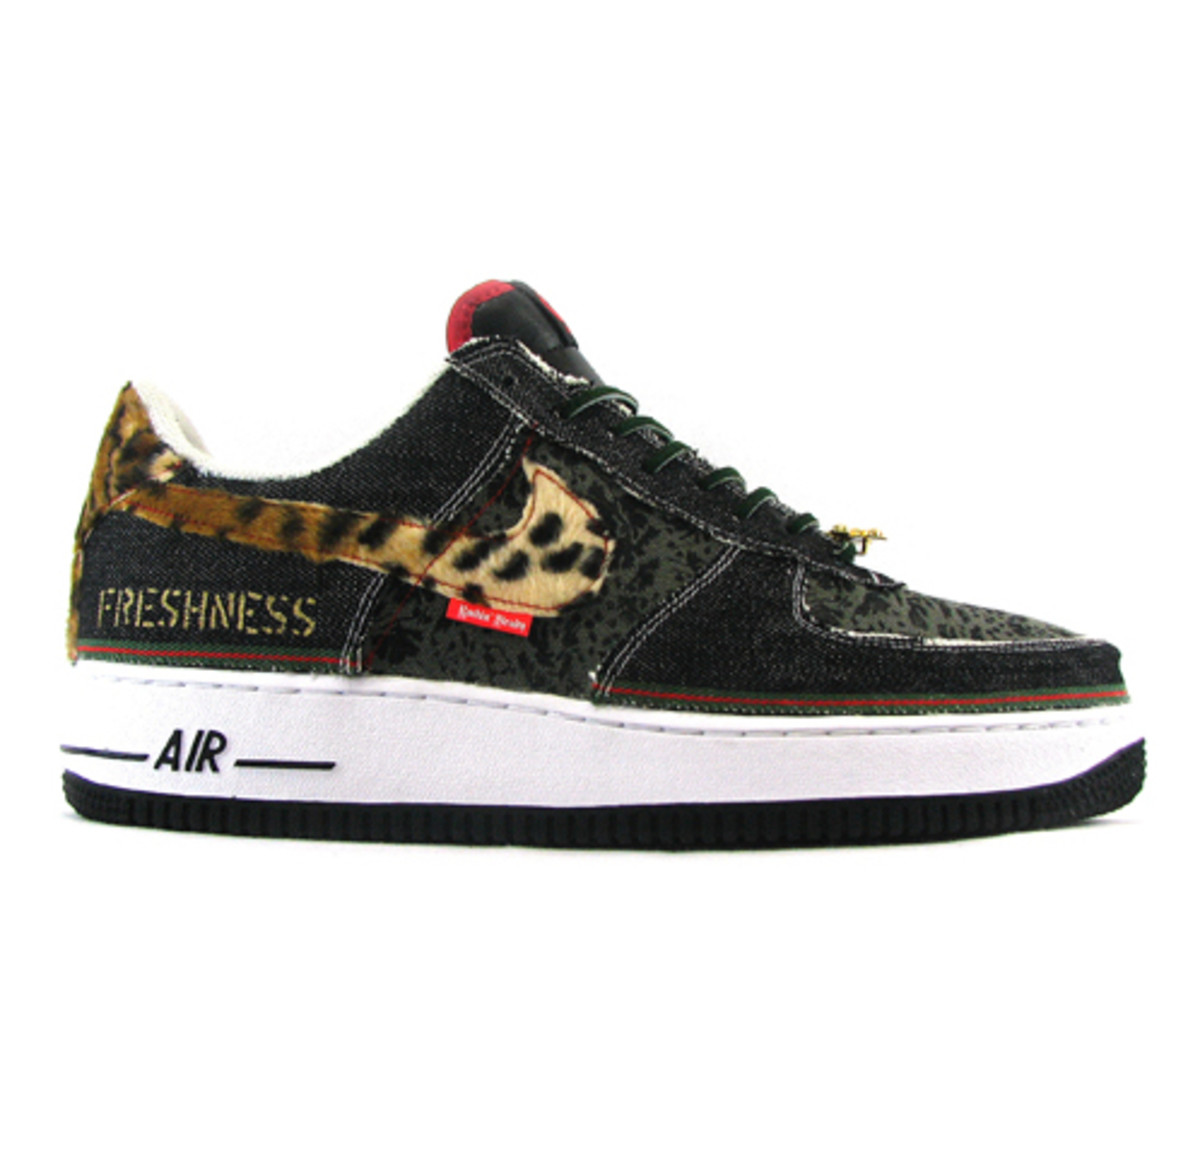 kicks-lab-freshness-sbtg-sable-af1-01